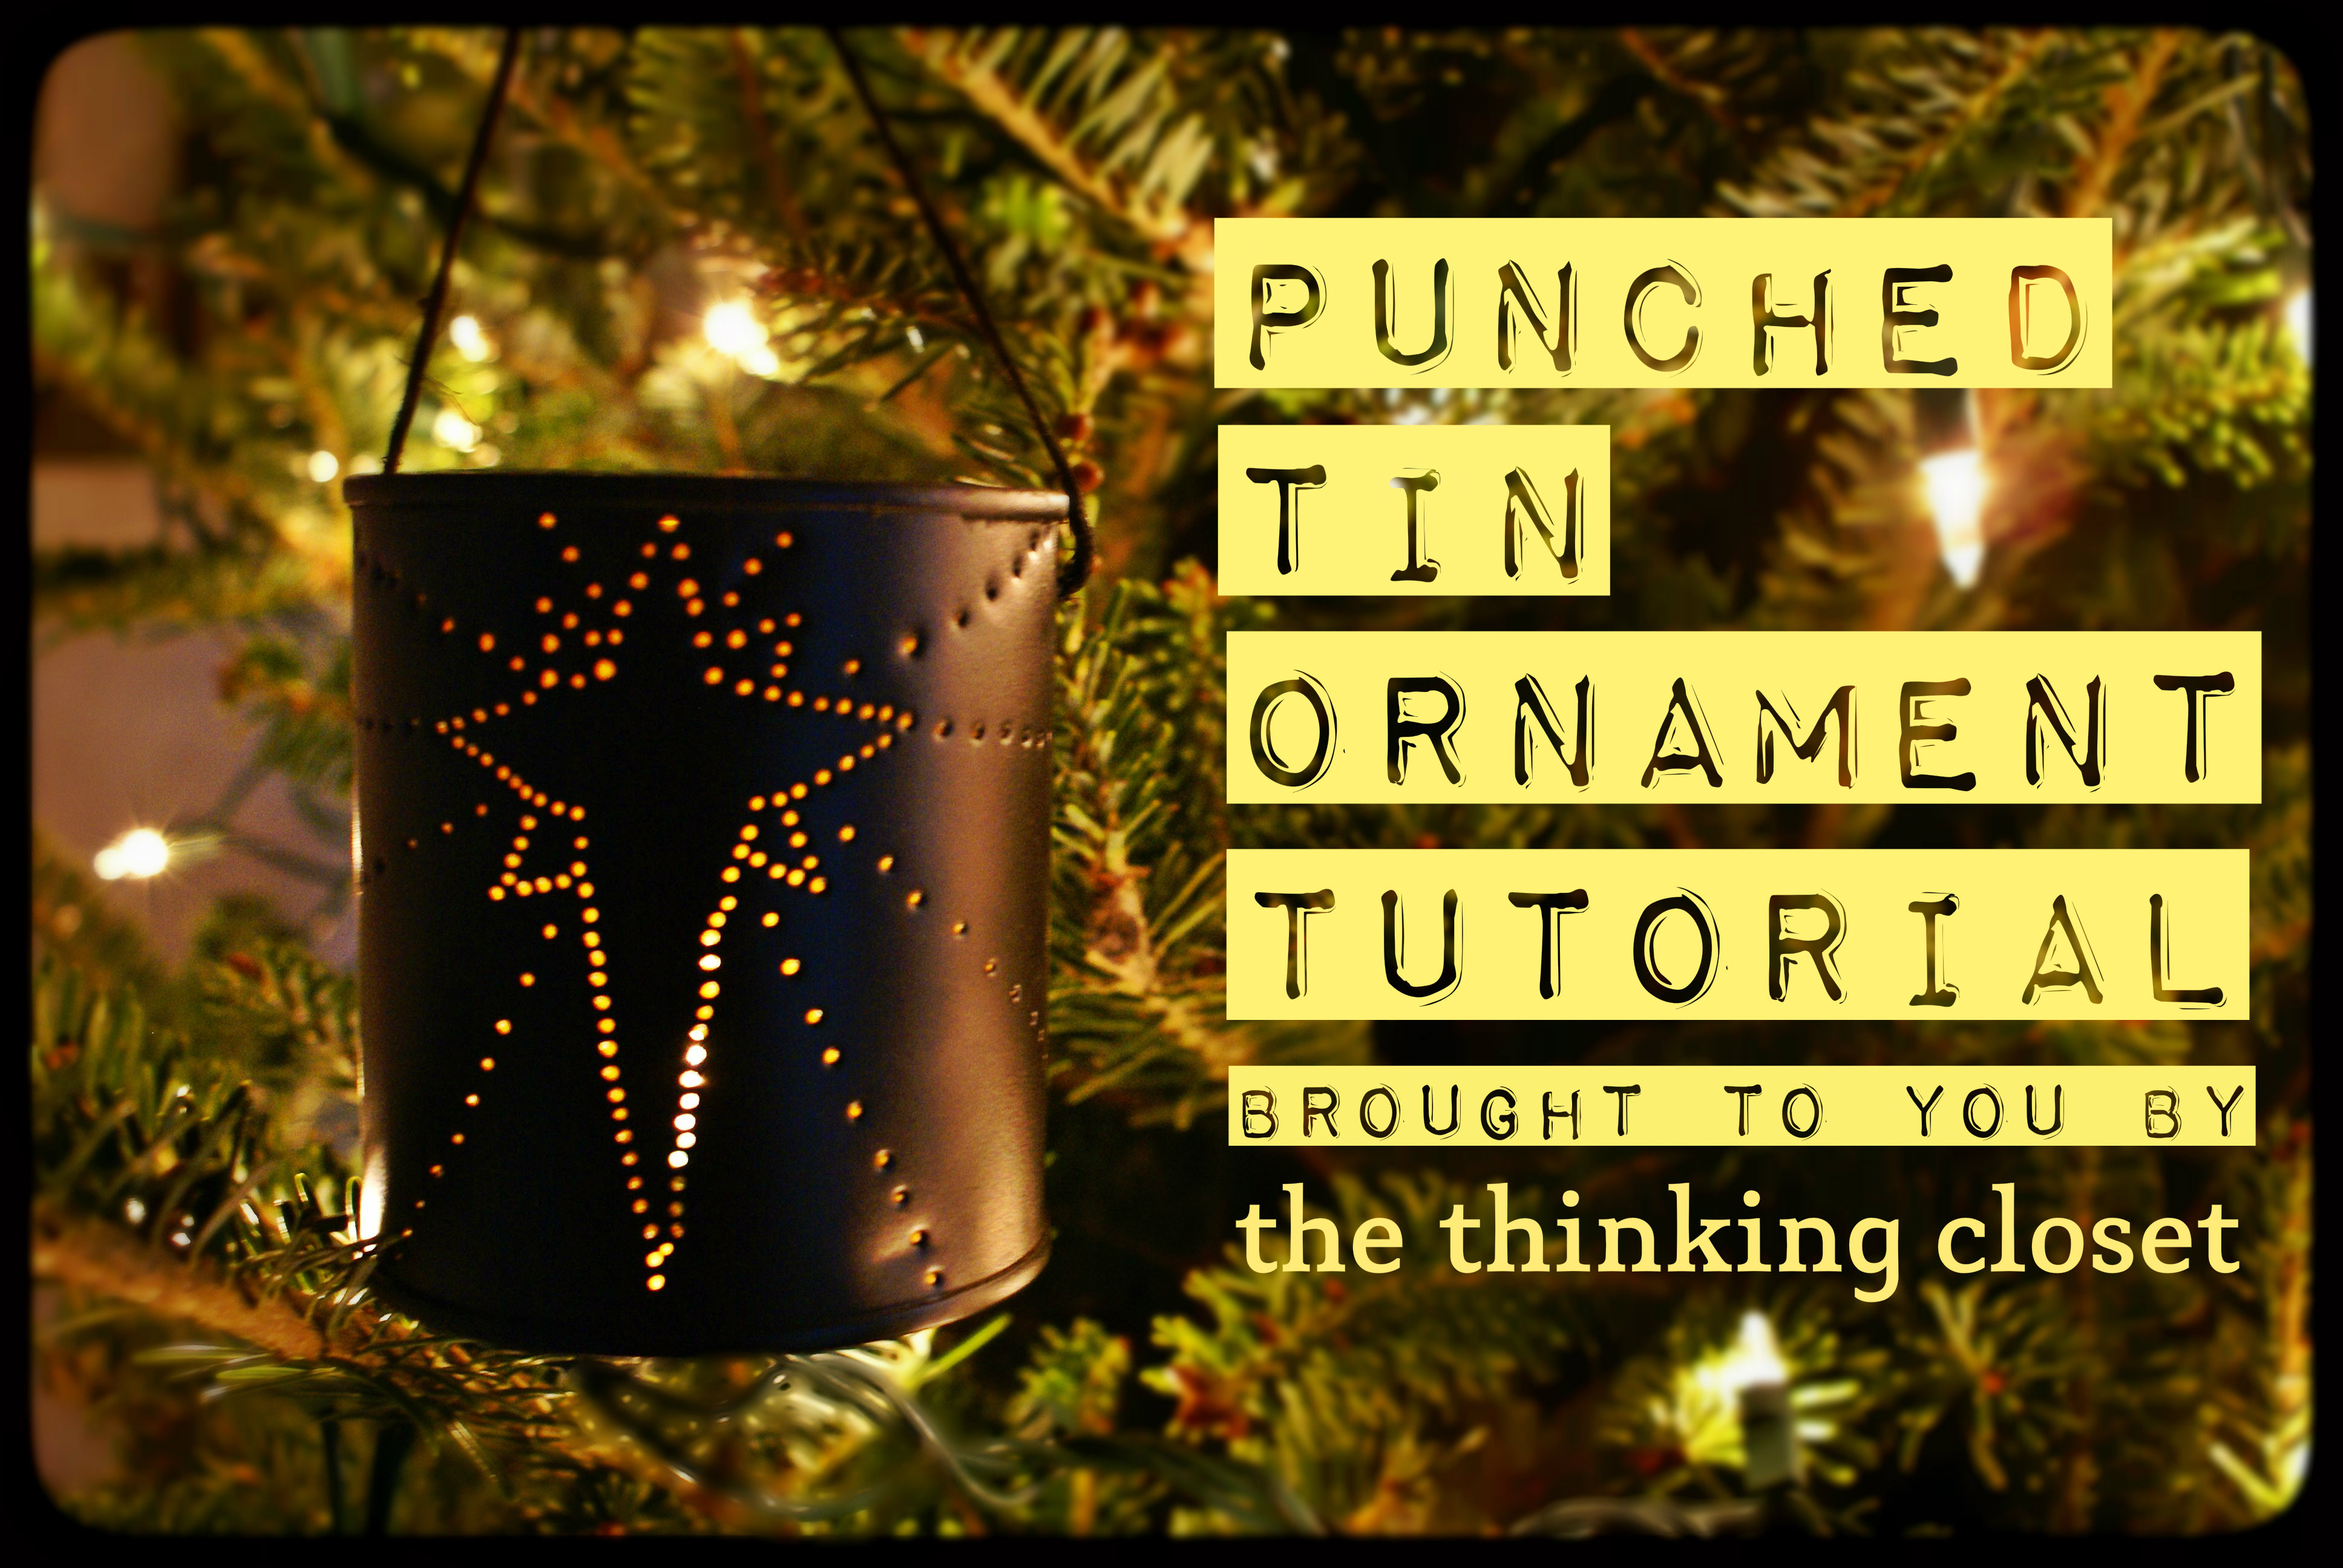 Punched Tin Ornament Tutorial - the thinking closet